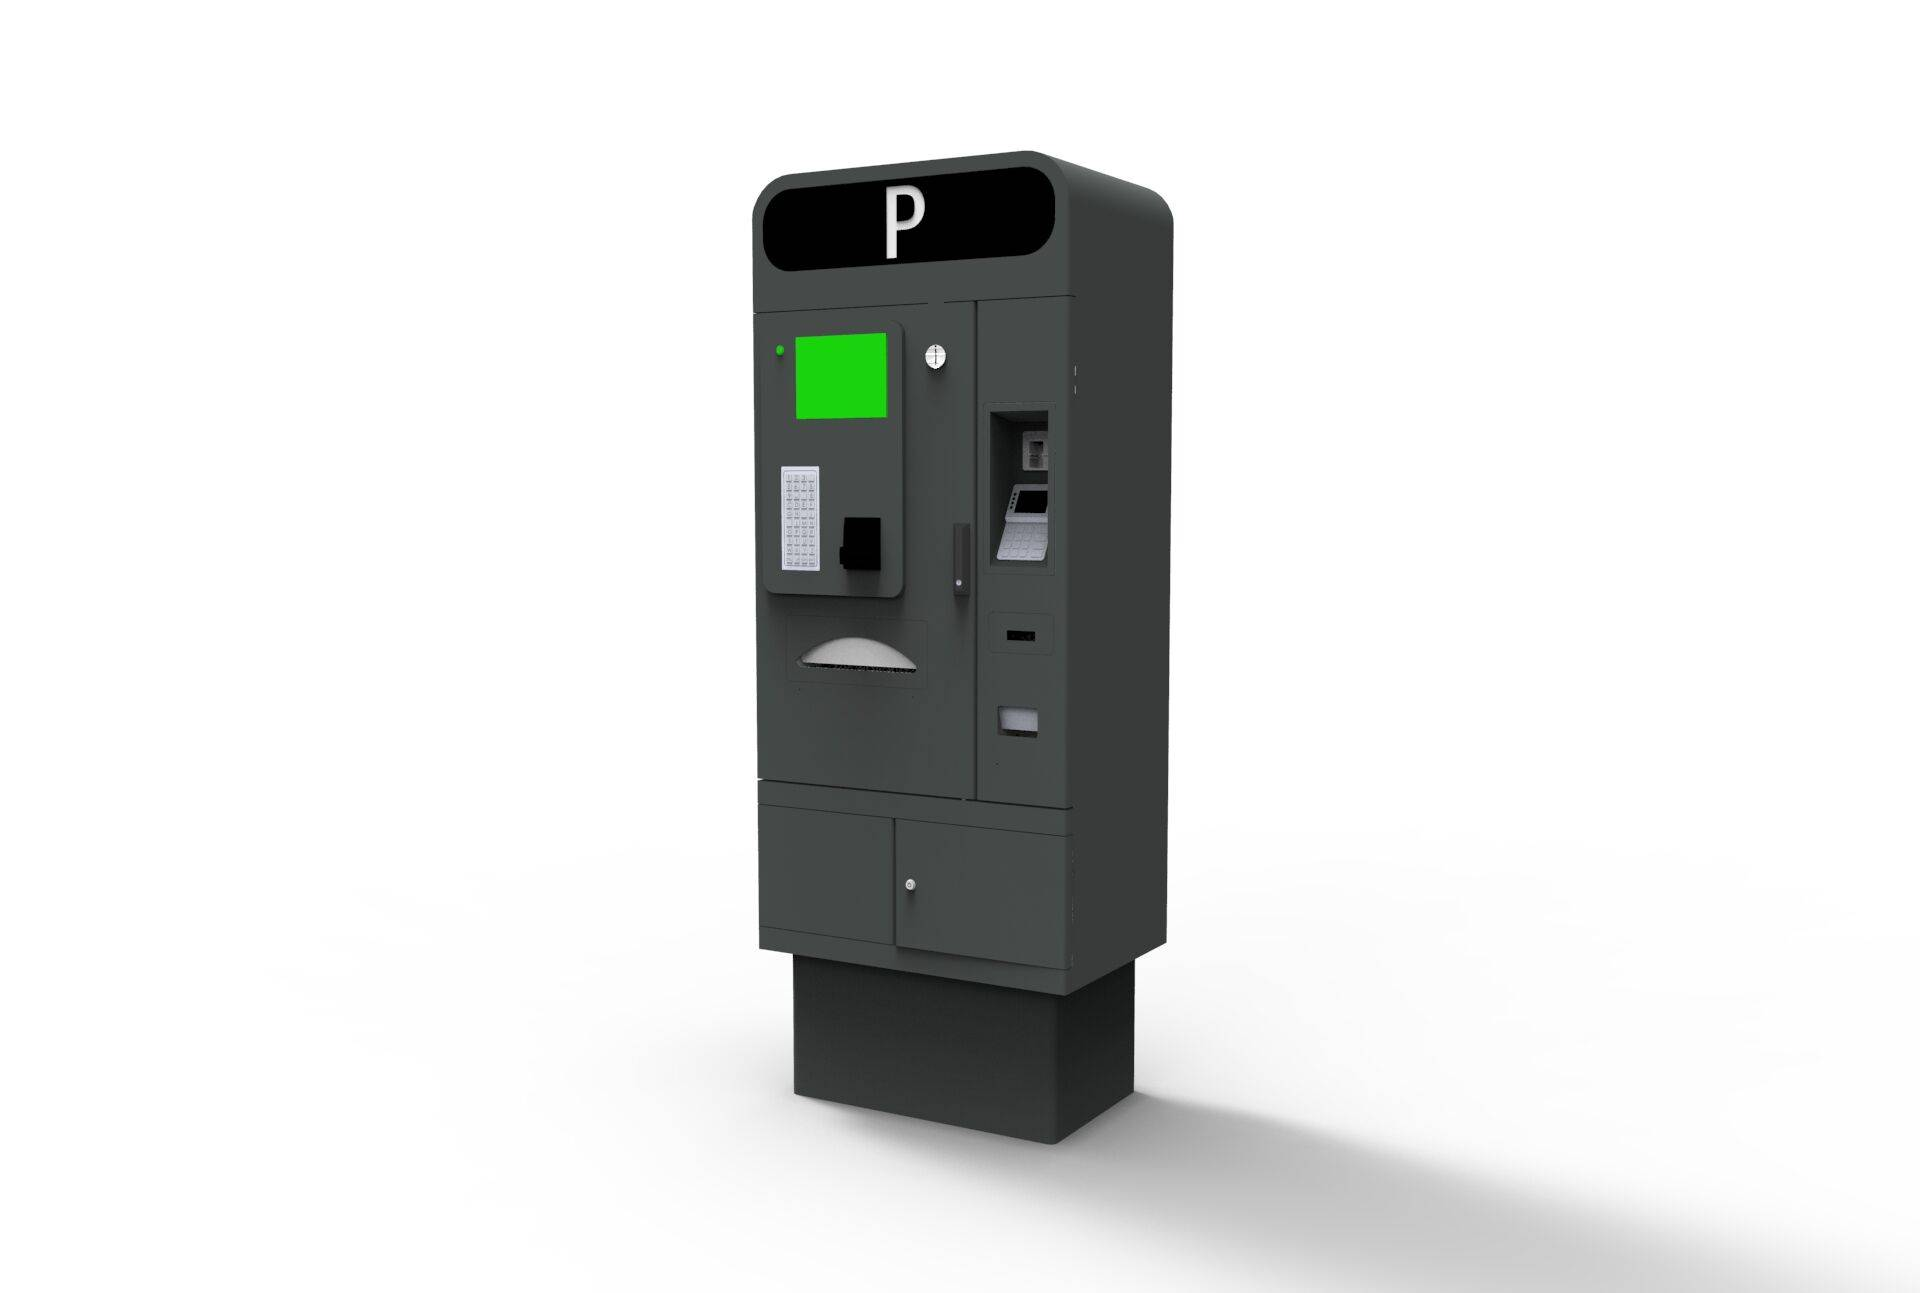 pay on foot barcode reader parking pay station with full function